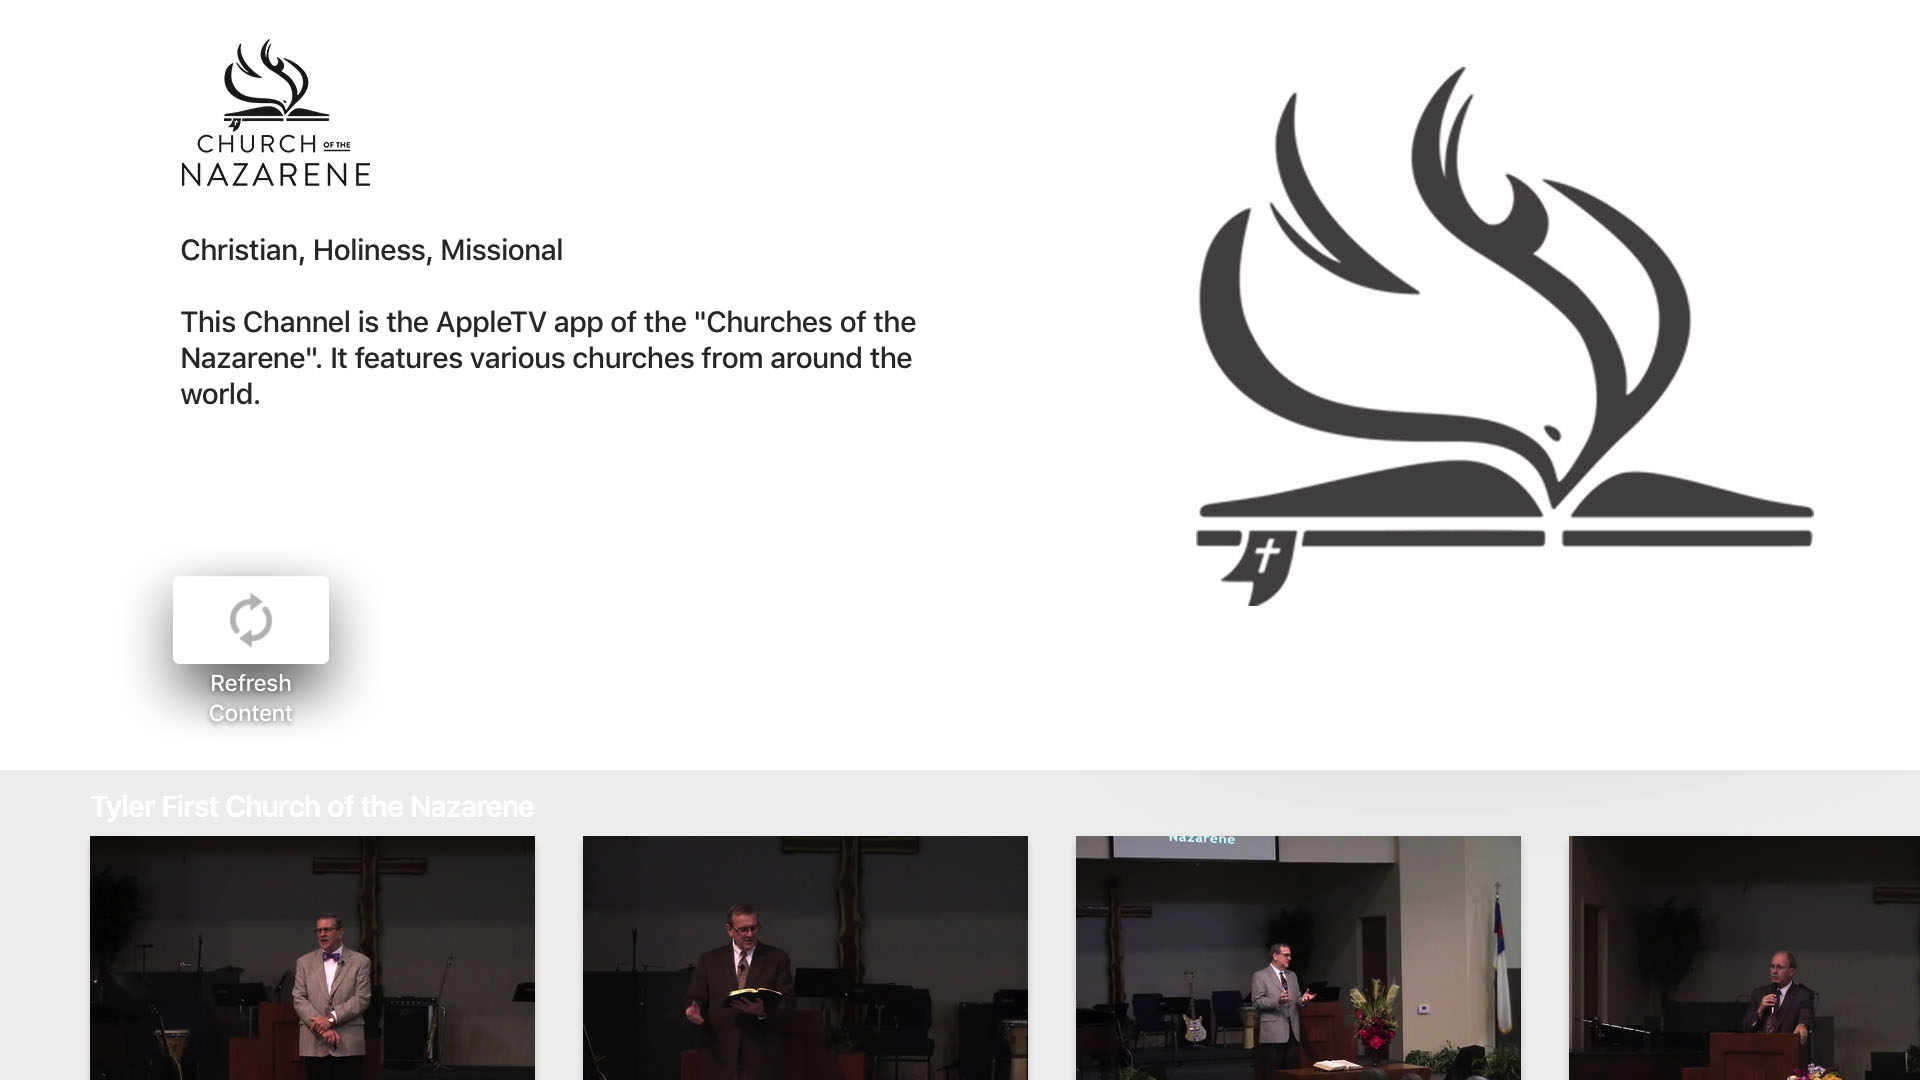 Churches of the Nazarene Screenshot 001